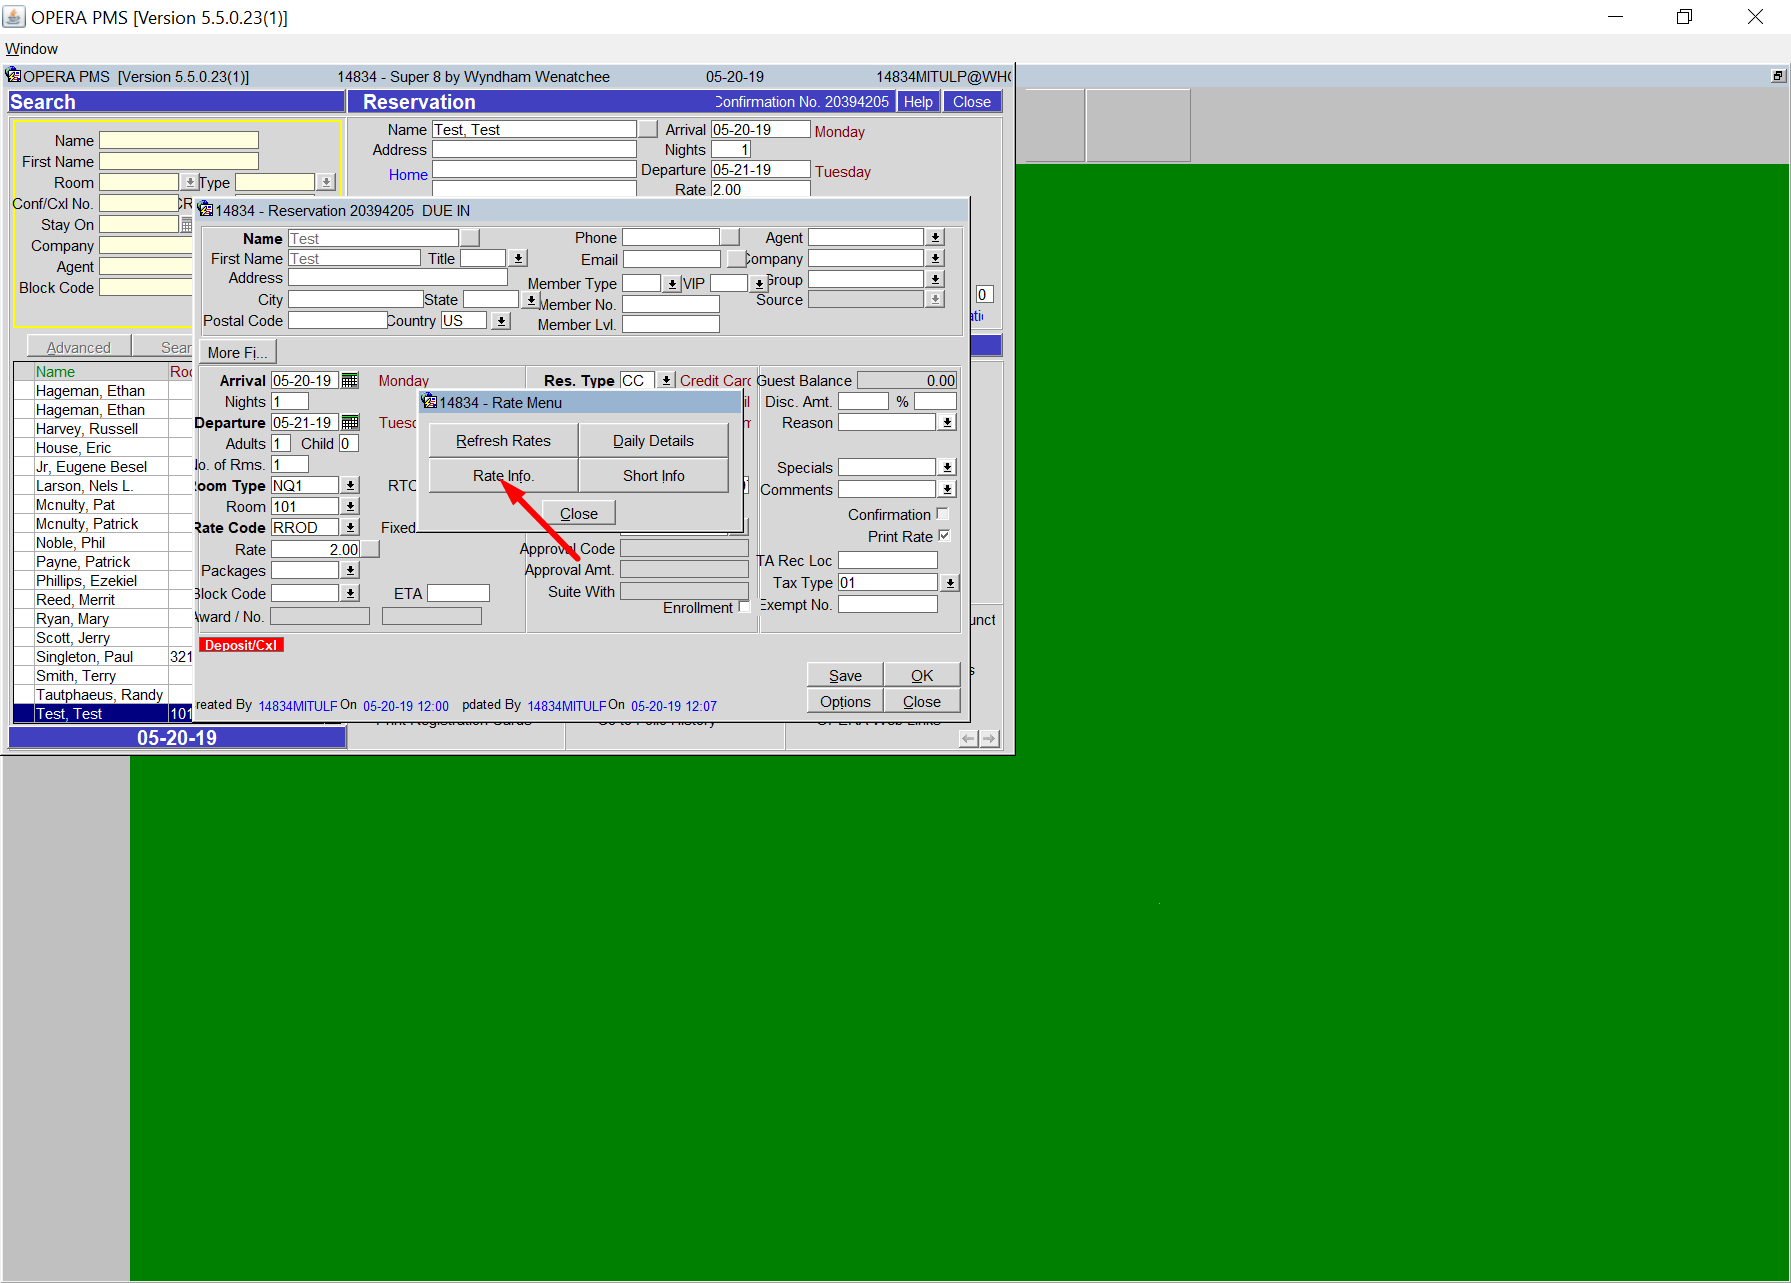 Synxis help step 5 search guest member data step 6 fill out ccuart Images